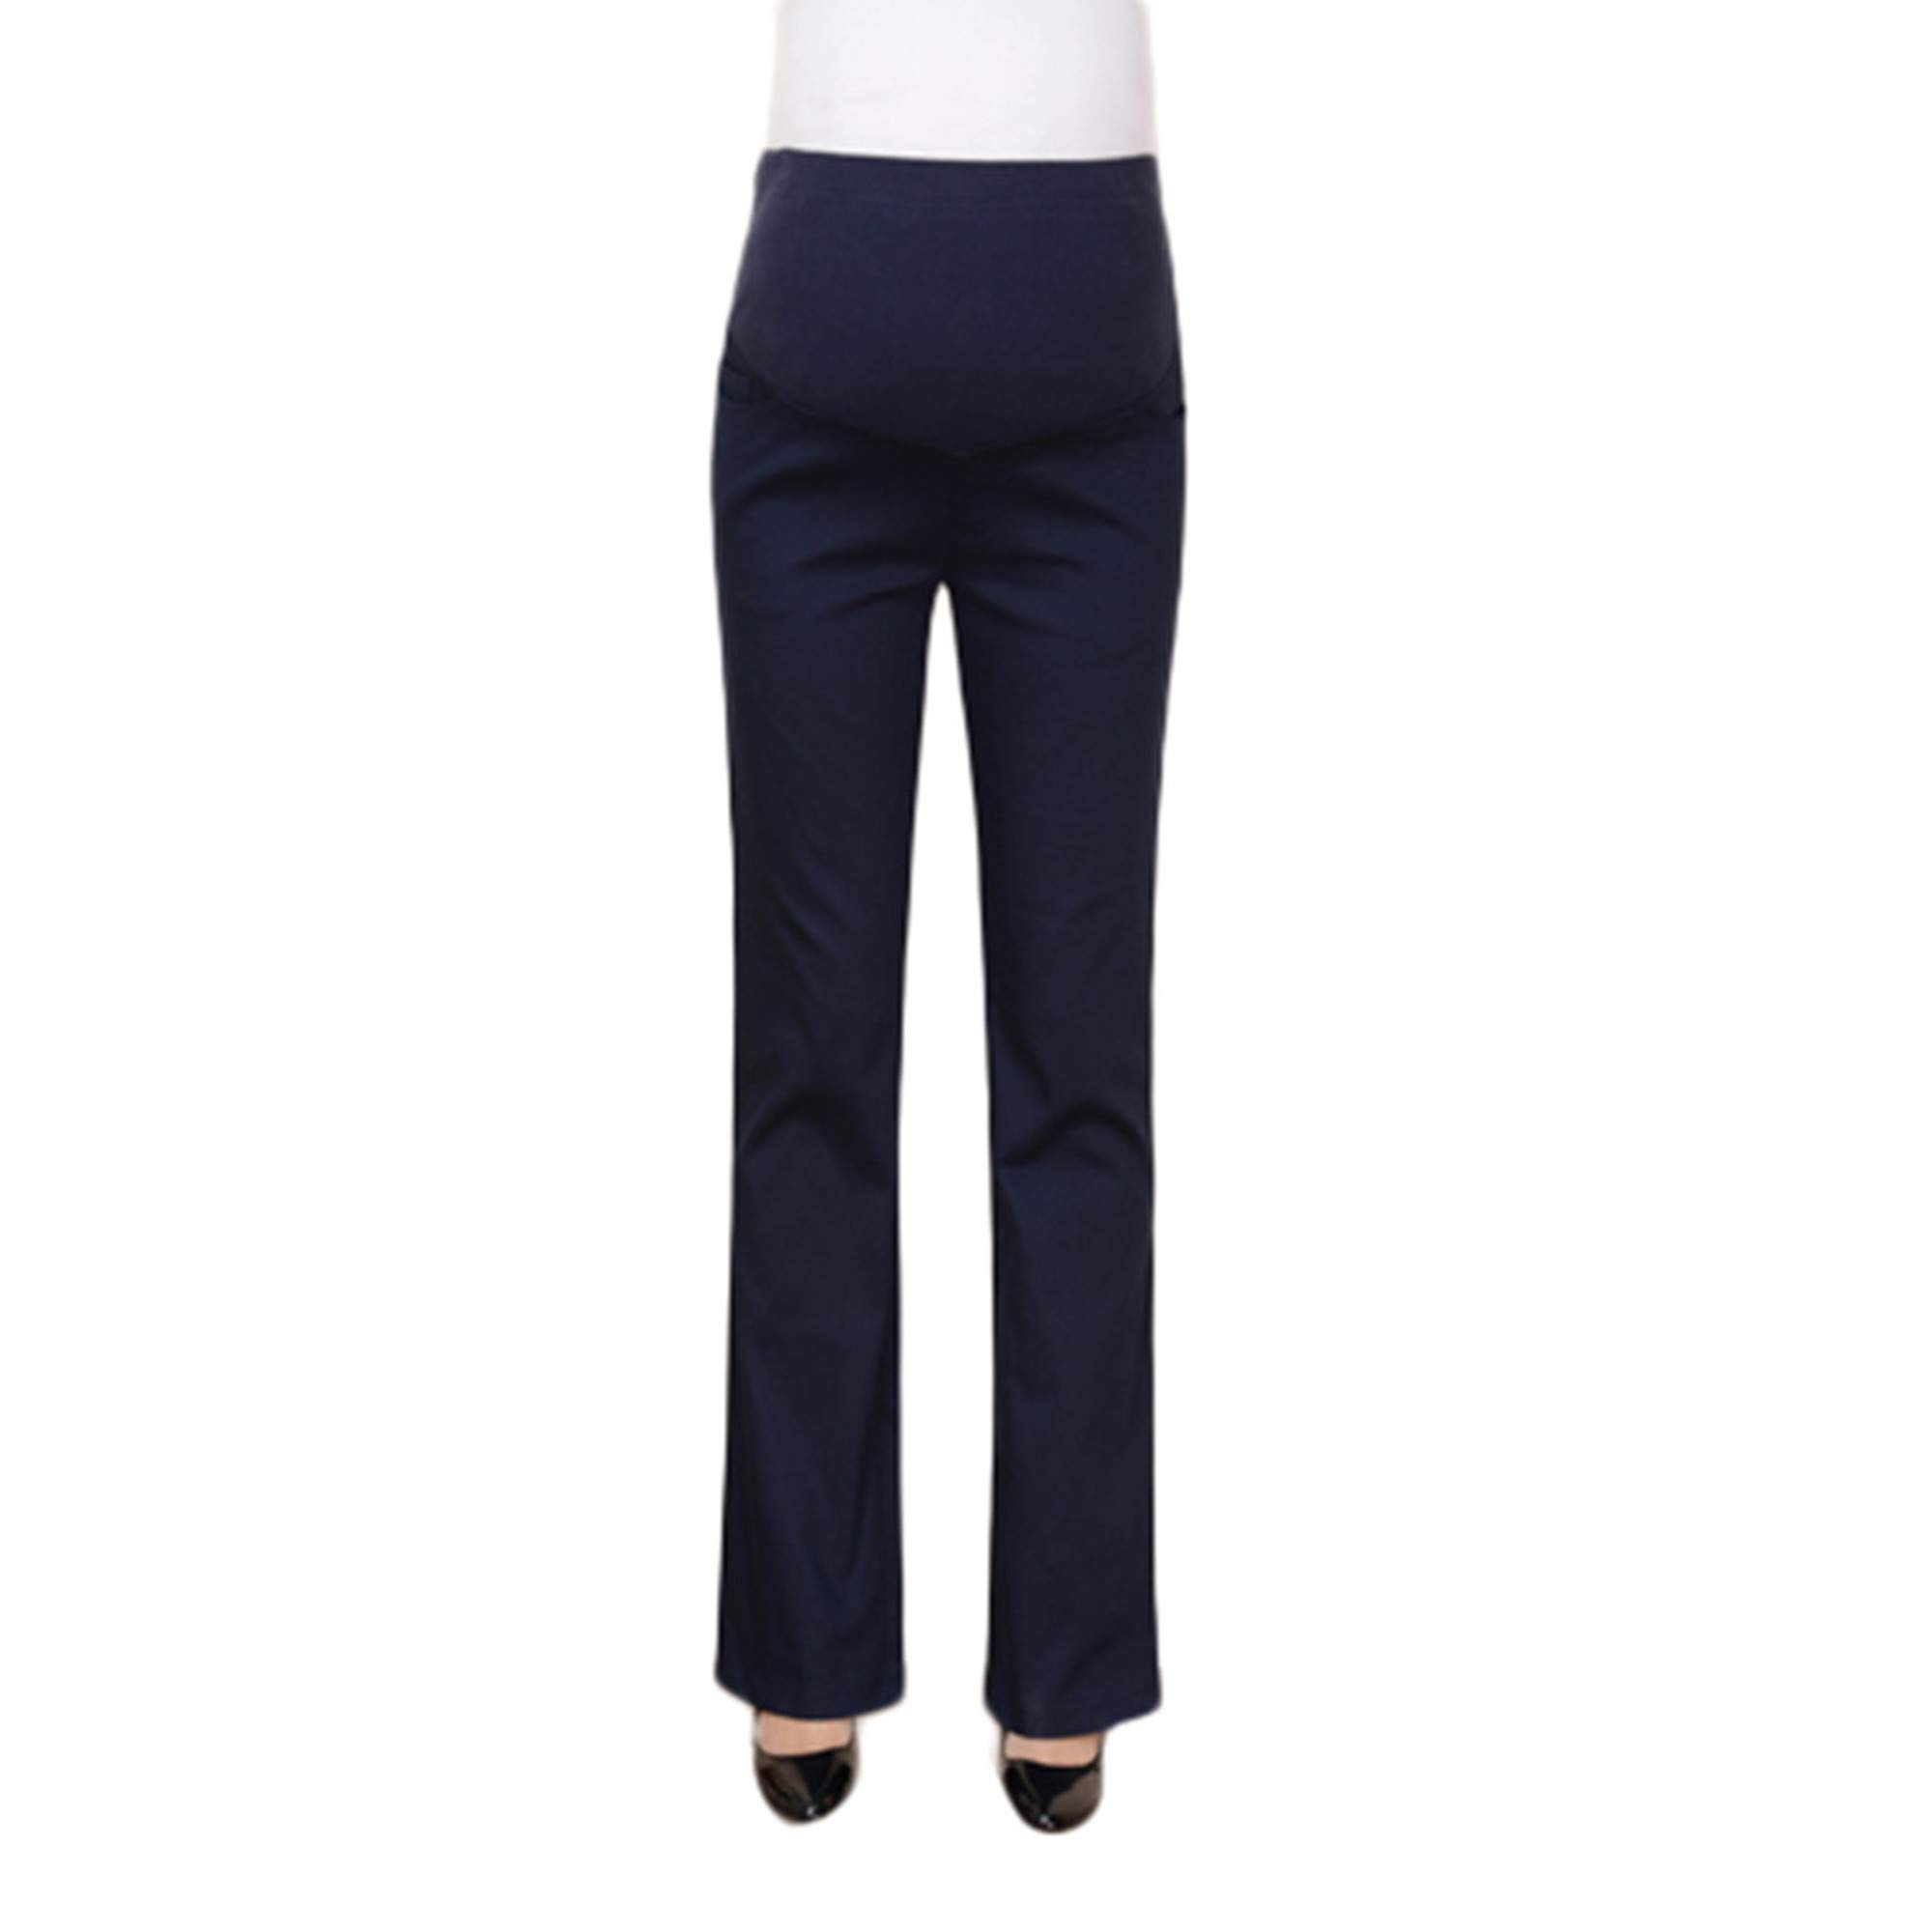 Huifa Maternity Comfort High Waist Trousers Pregnant Casual Prop Belly Leggings (Navy,M)